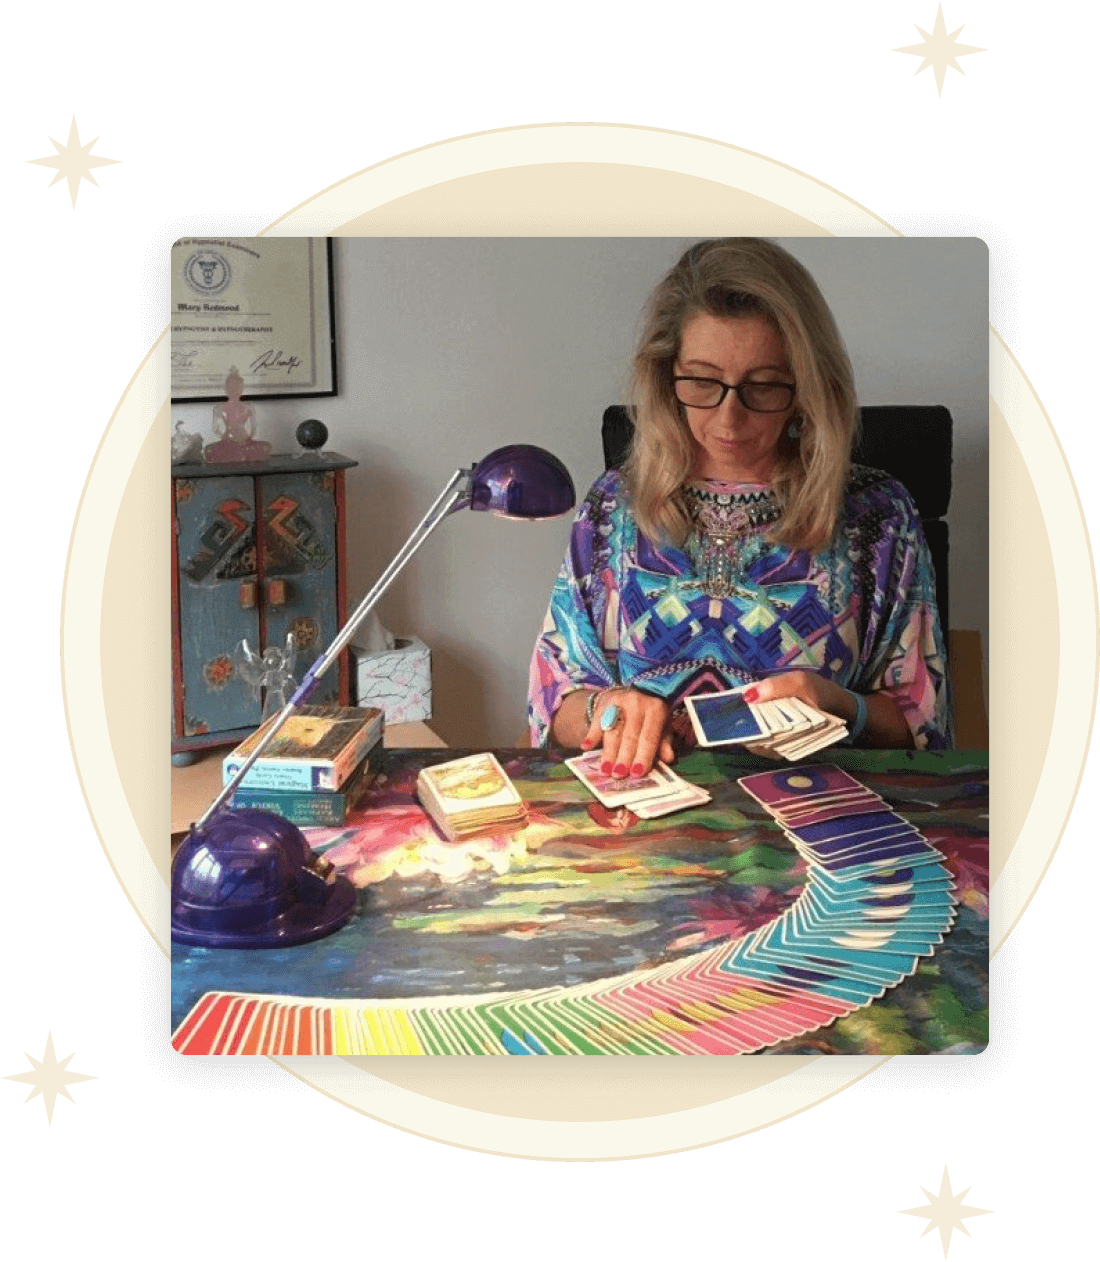 Mary Redmond working with tarot cards